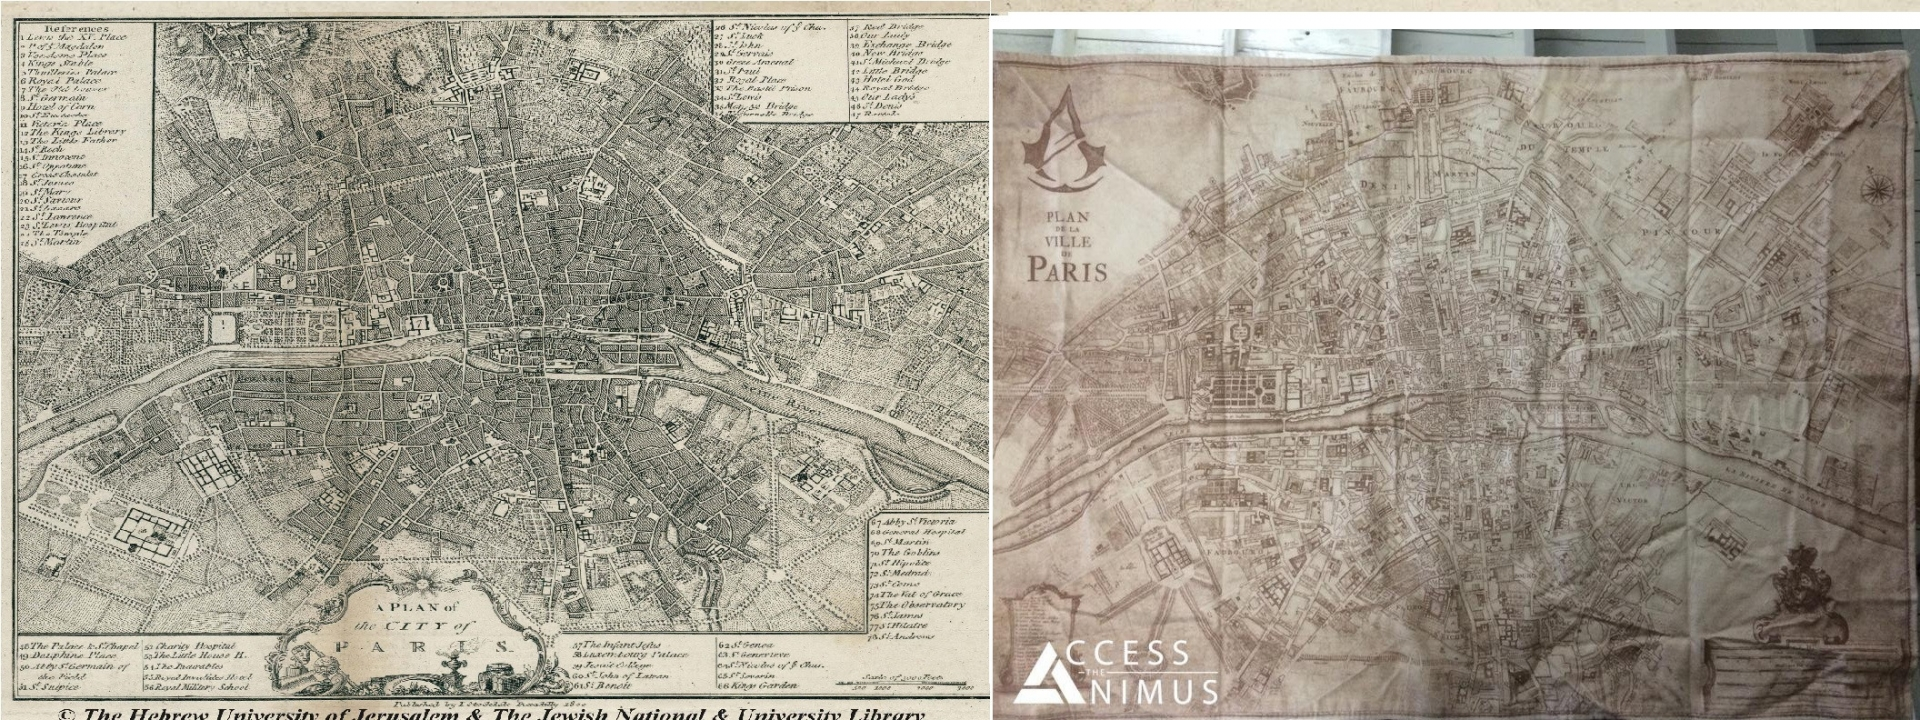 Assassin's Creed Unity Real Paris Map vs In-Game Paris Map